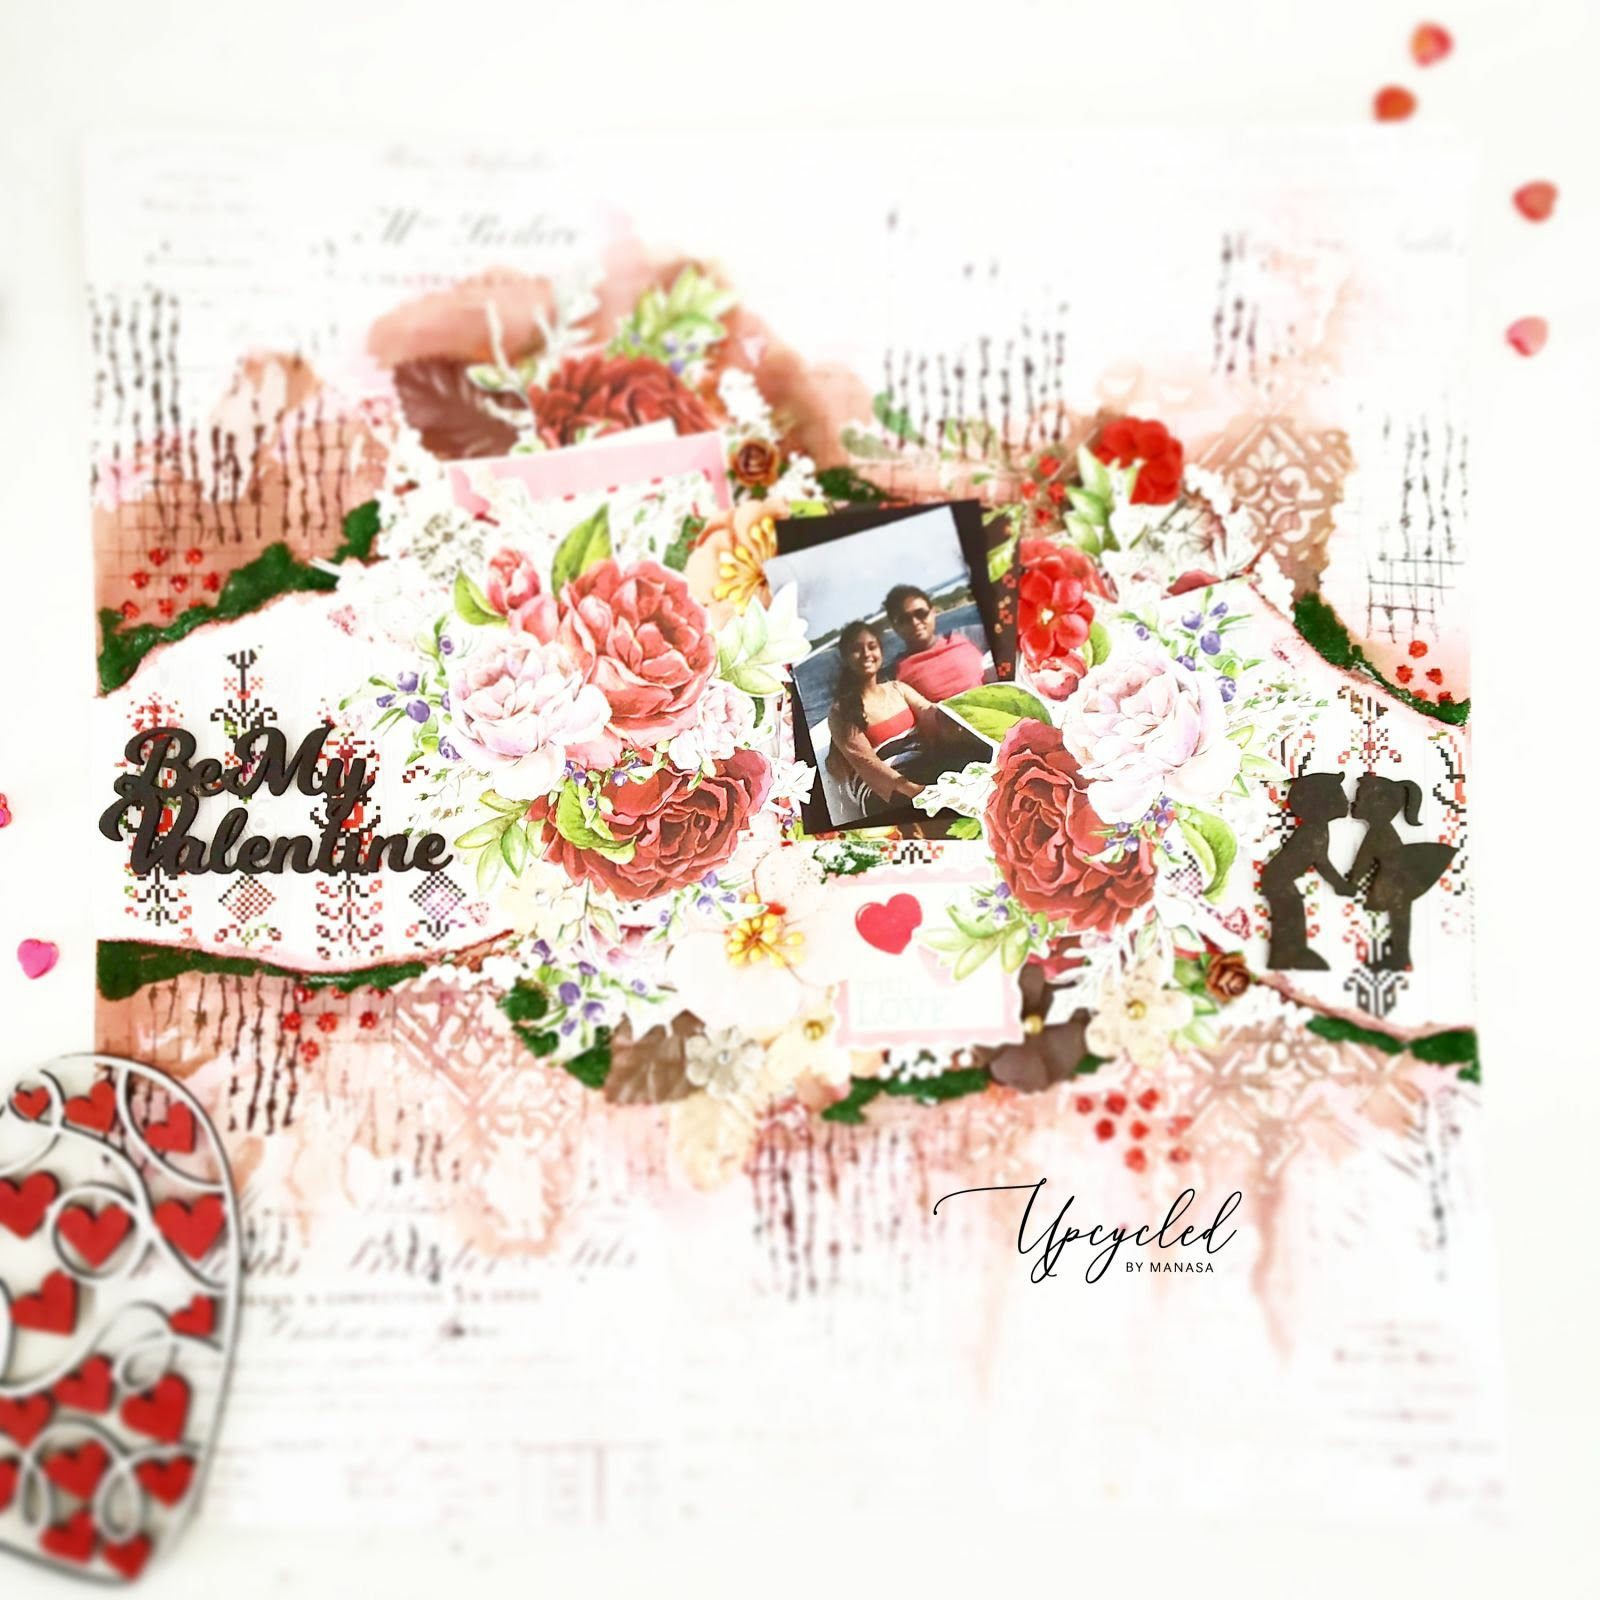 Valentine's Theme Mixed Media Layout                           By Manasa Priya